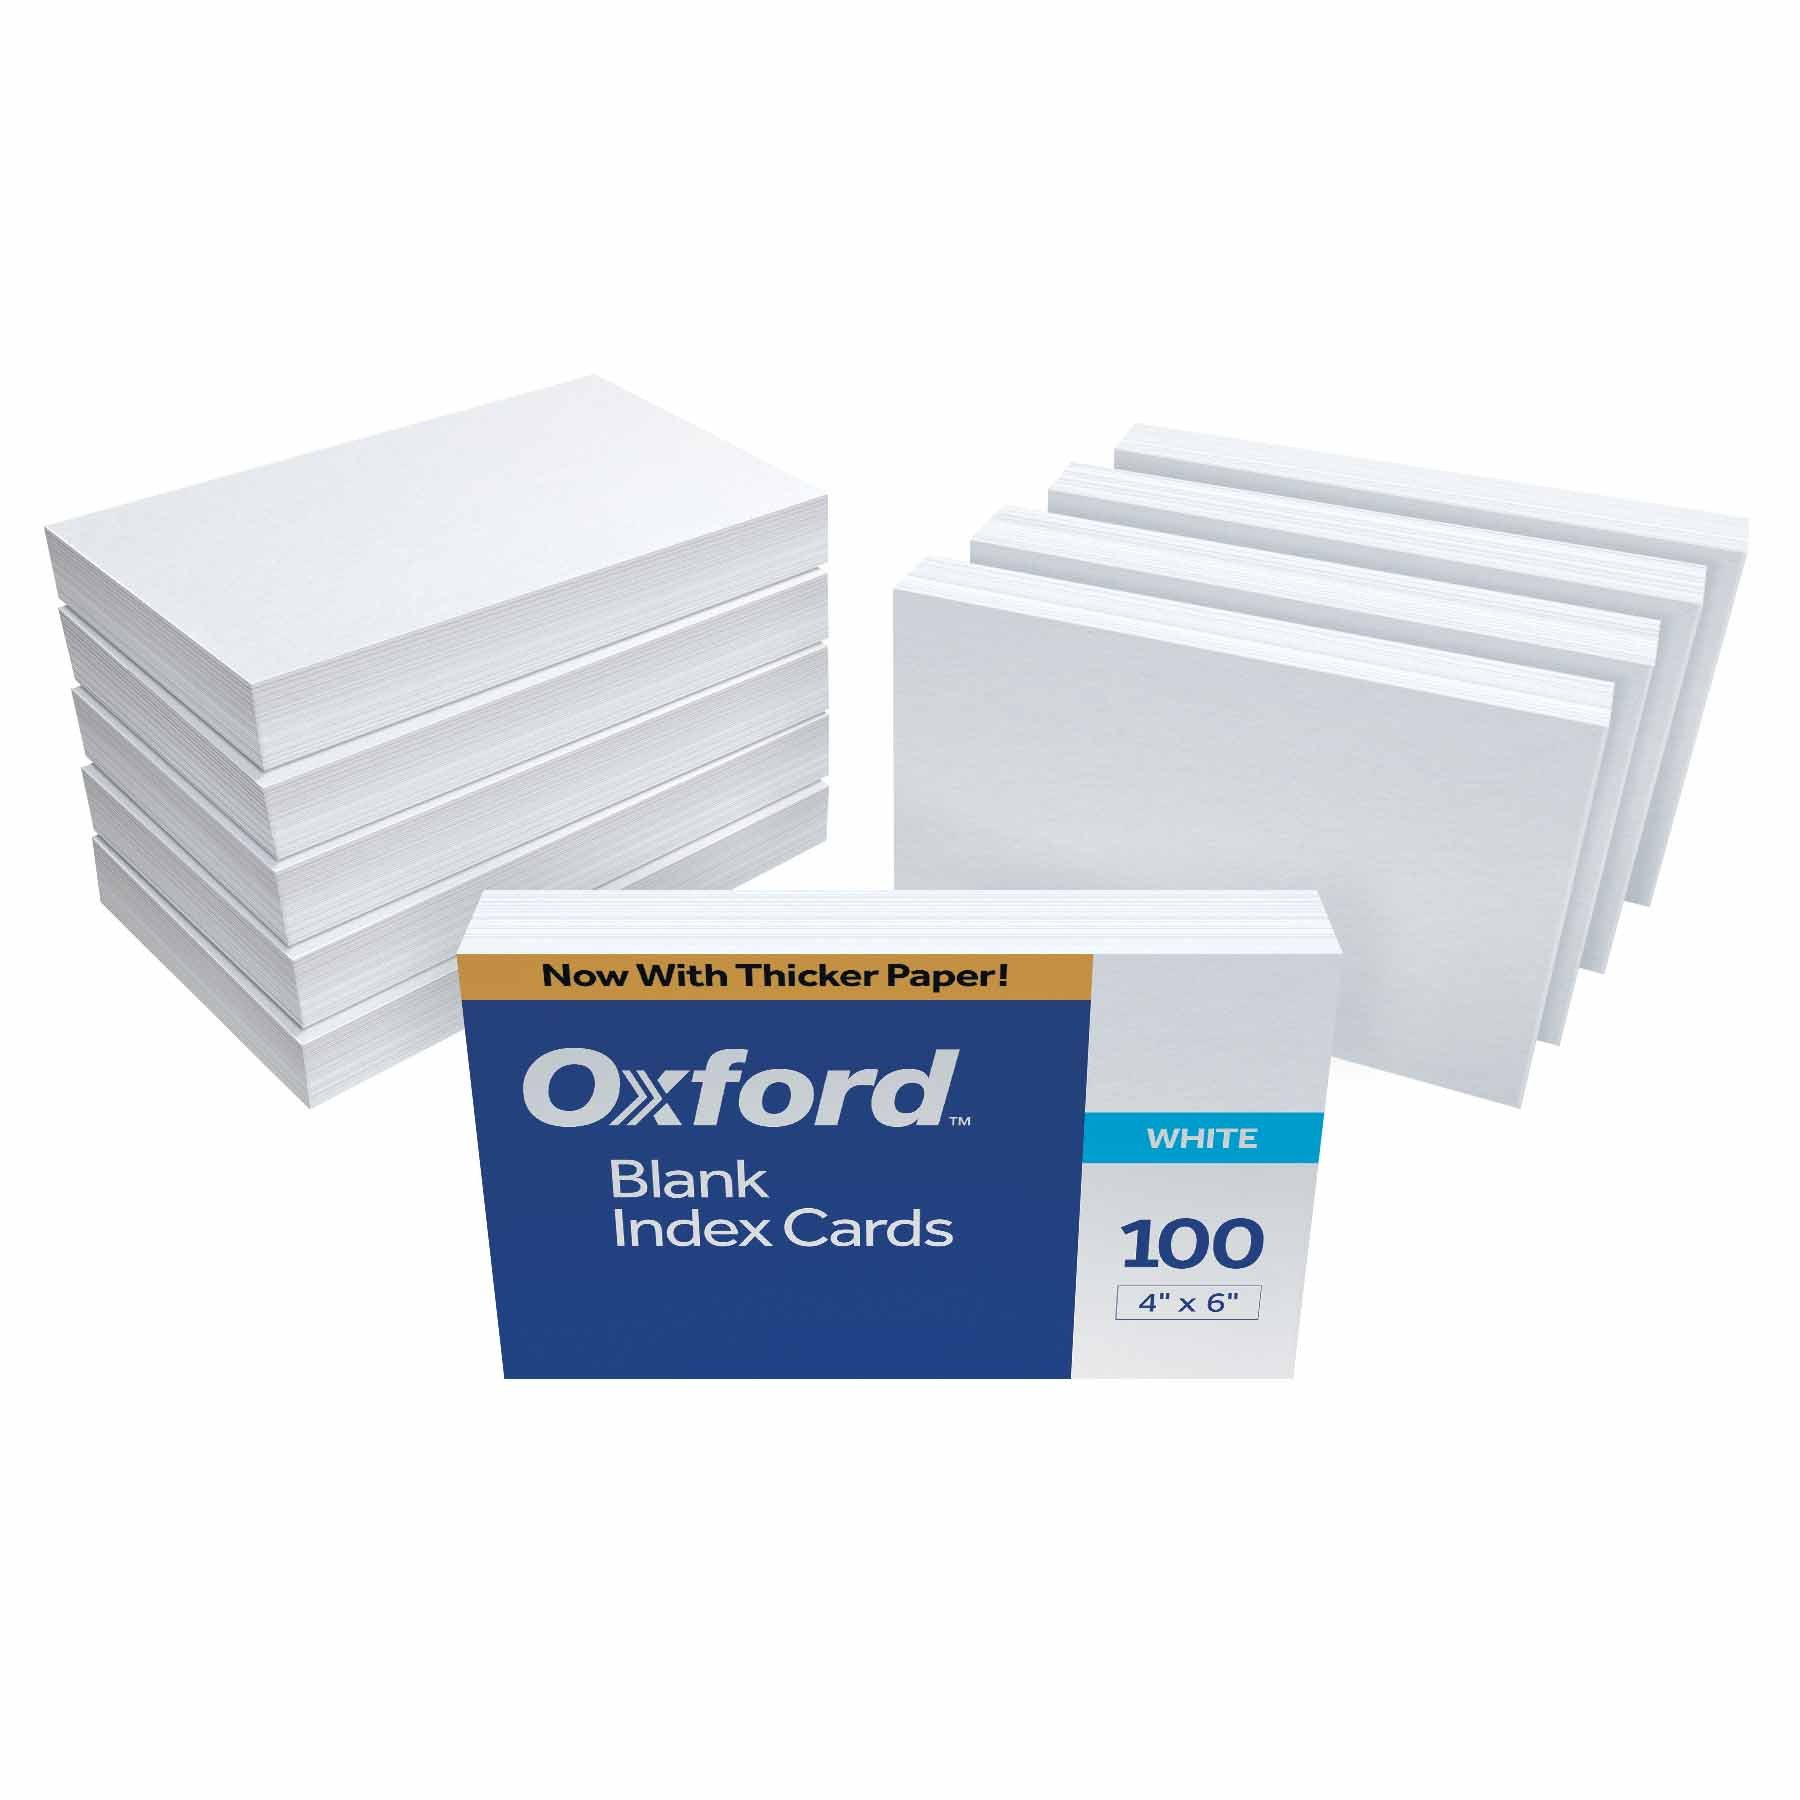 Oxford Blank Index Cards, 4'' x 6'', White, 1,000 Cards (10 Packs of 100) (40) by Oxford